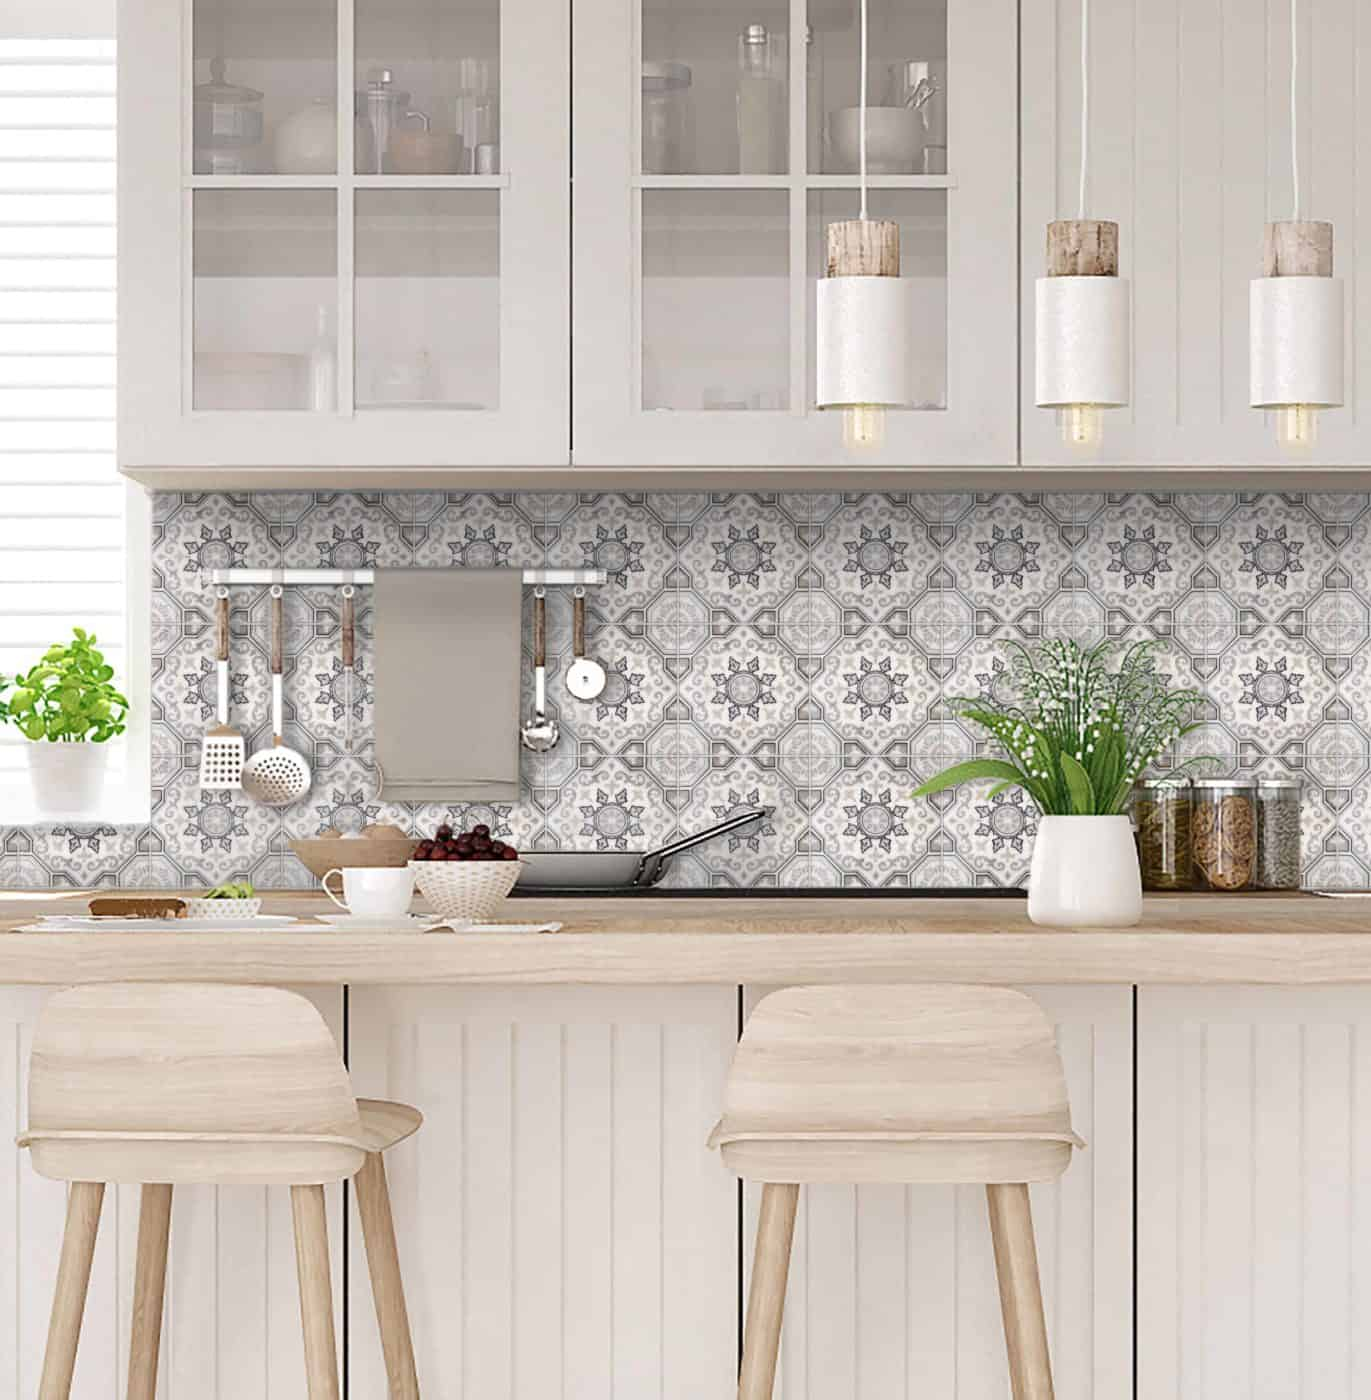 custom color layout mock-up of kitchen backsplash